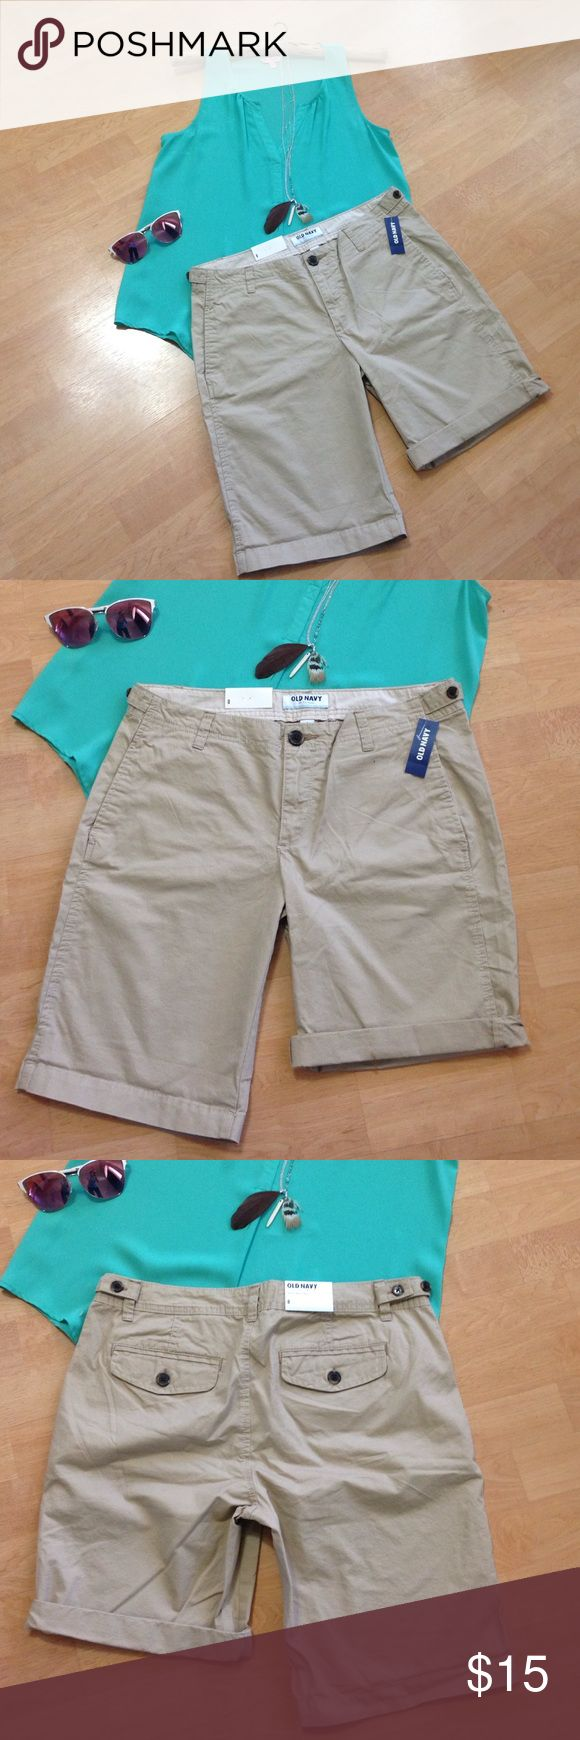 NWT Old Navy khaki Bermuda shorts, 💯 cotton NWT Old Navy khaki Bermuda shorts, 💯 cotton, size 8. Wear folded up for a shorter, sexier look or down for a more conservative feel. Ships same day of purchase! Old Navy Shorts Bermudas